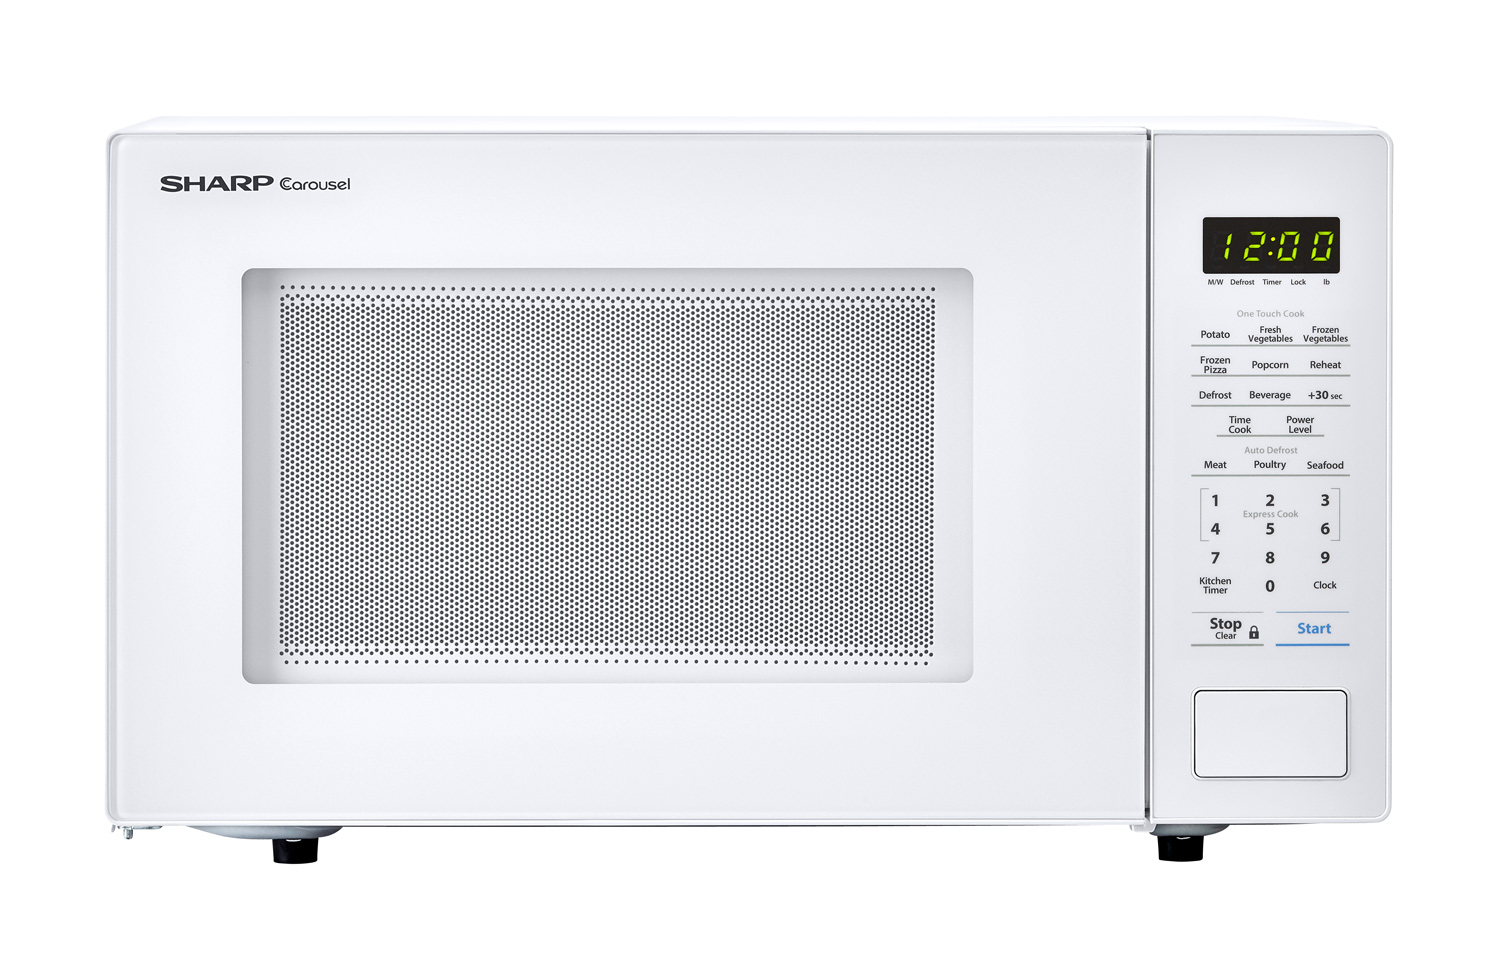 hight resolution of the innovative features of the sharp smc1131cw microwave like one touch controls auto defrost and the carousel turntable system make cooking and